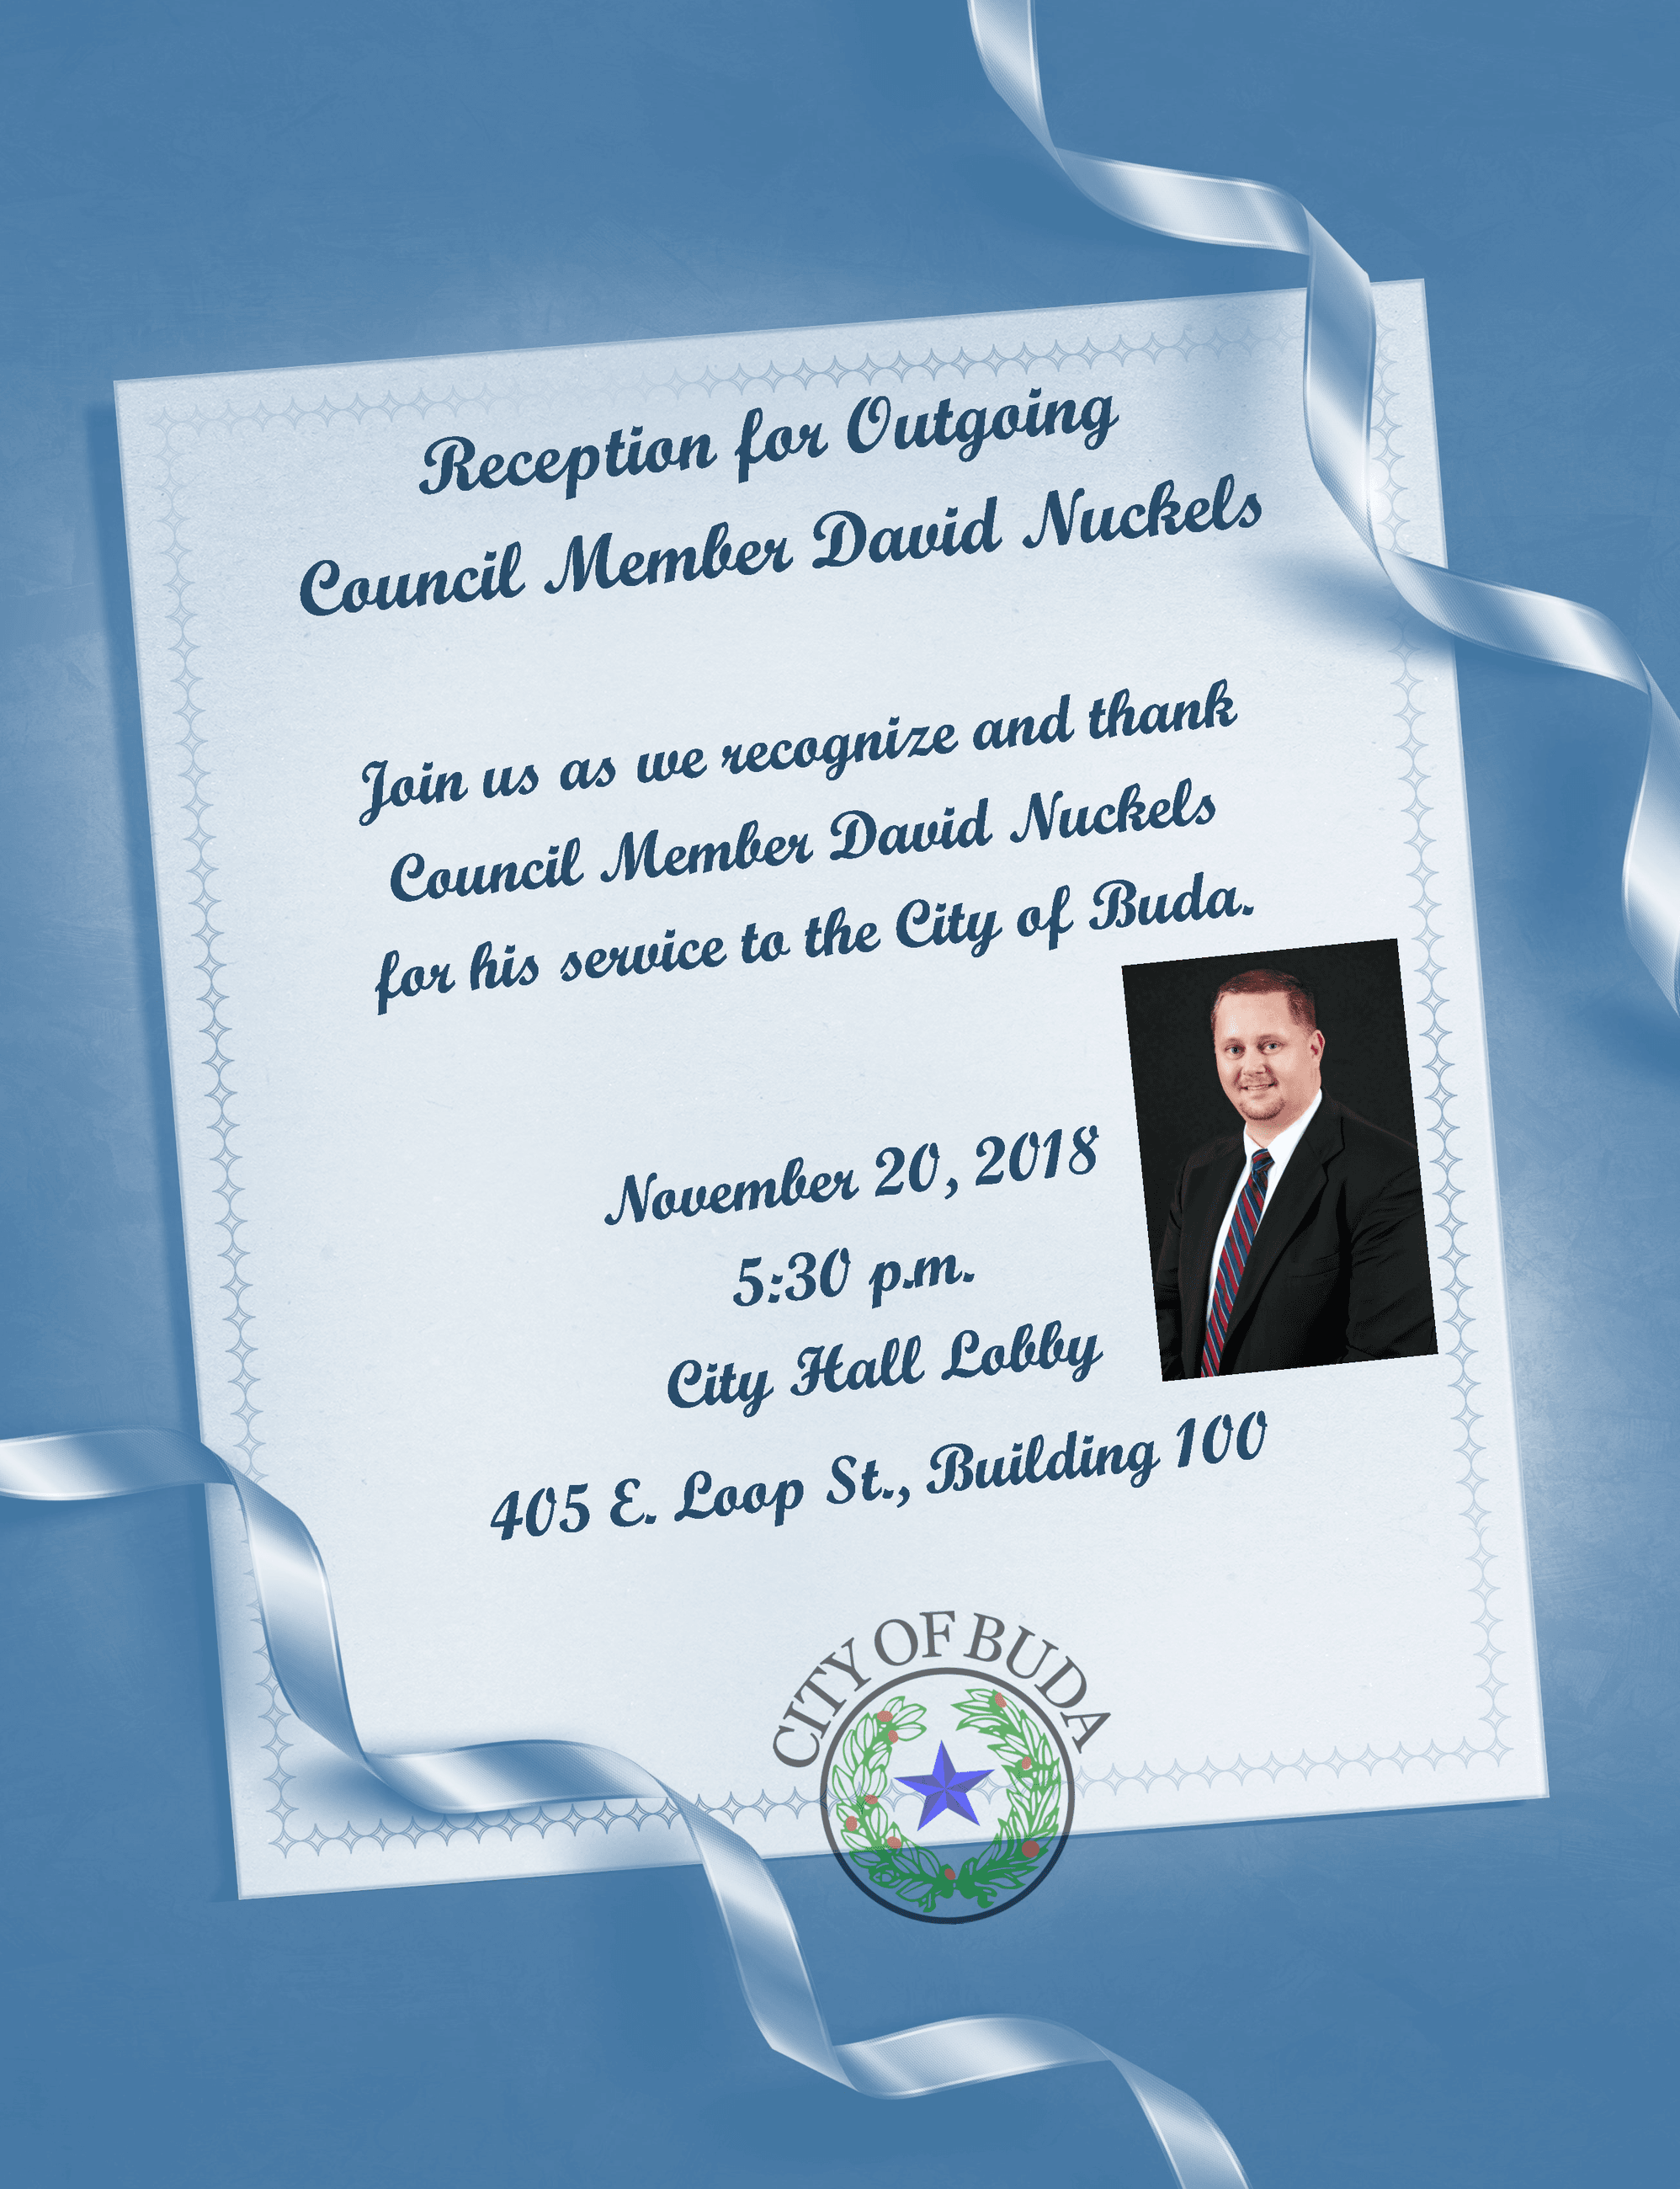 Reception for Outgoing Council Member David Nuckels 2 - Nov. 20, 2018